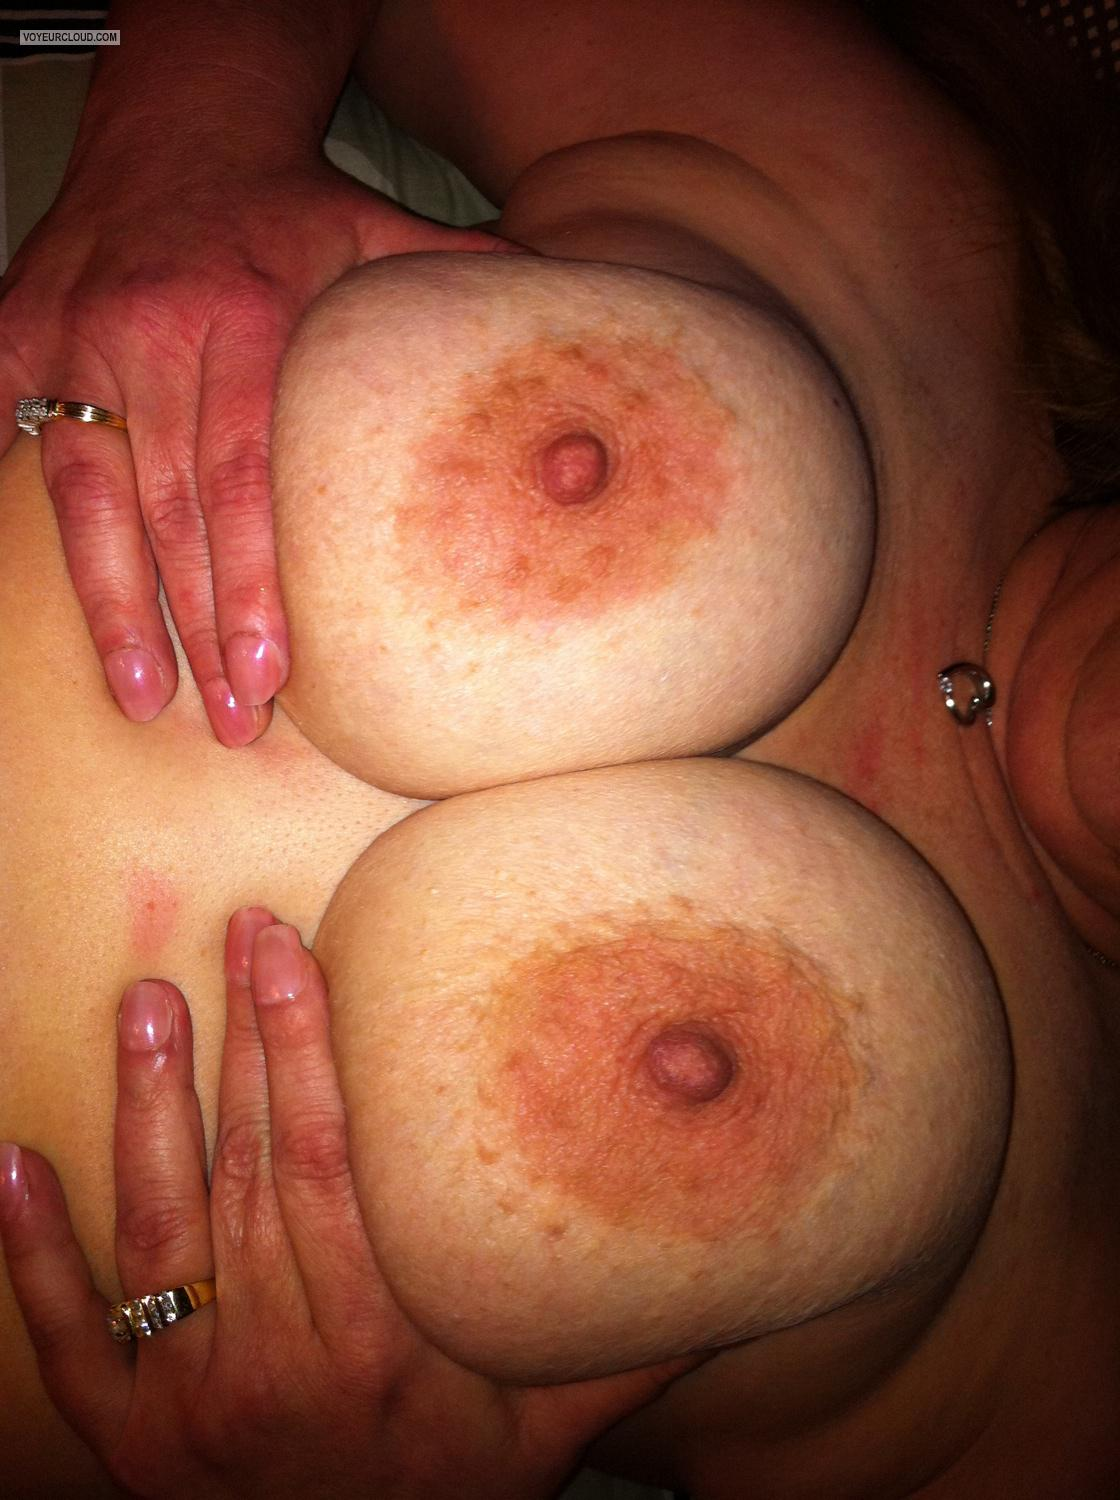 Tit Flash: Big Tits By IPhone - Shelly from United States